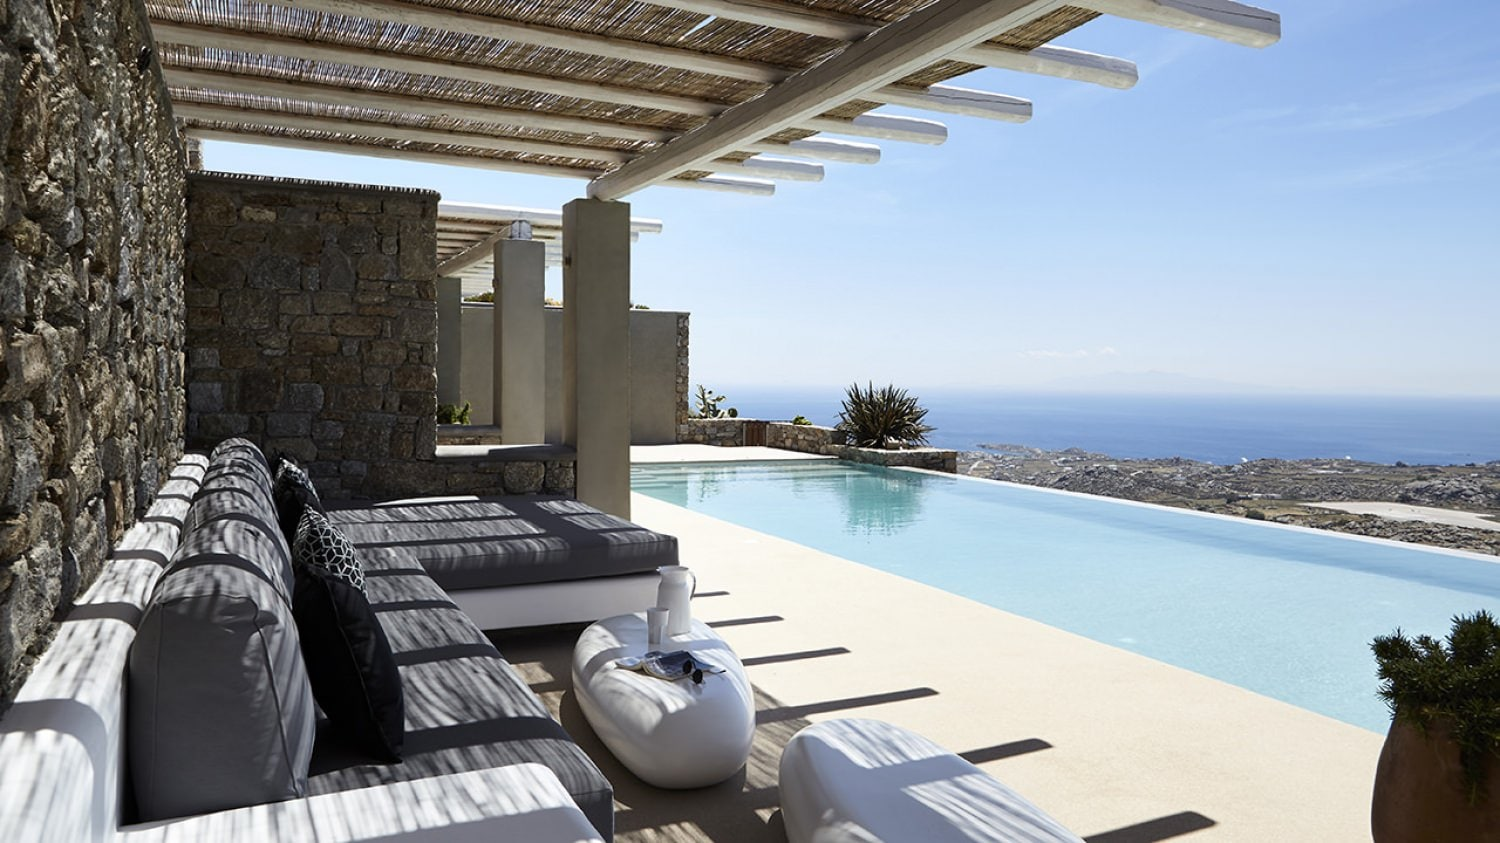 Property Image 2 - Captivating Elegant villa with private pool